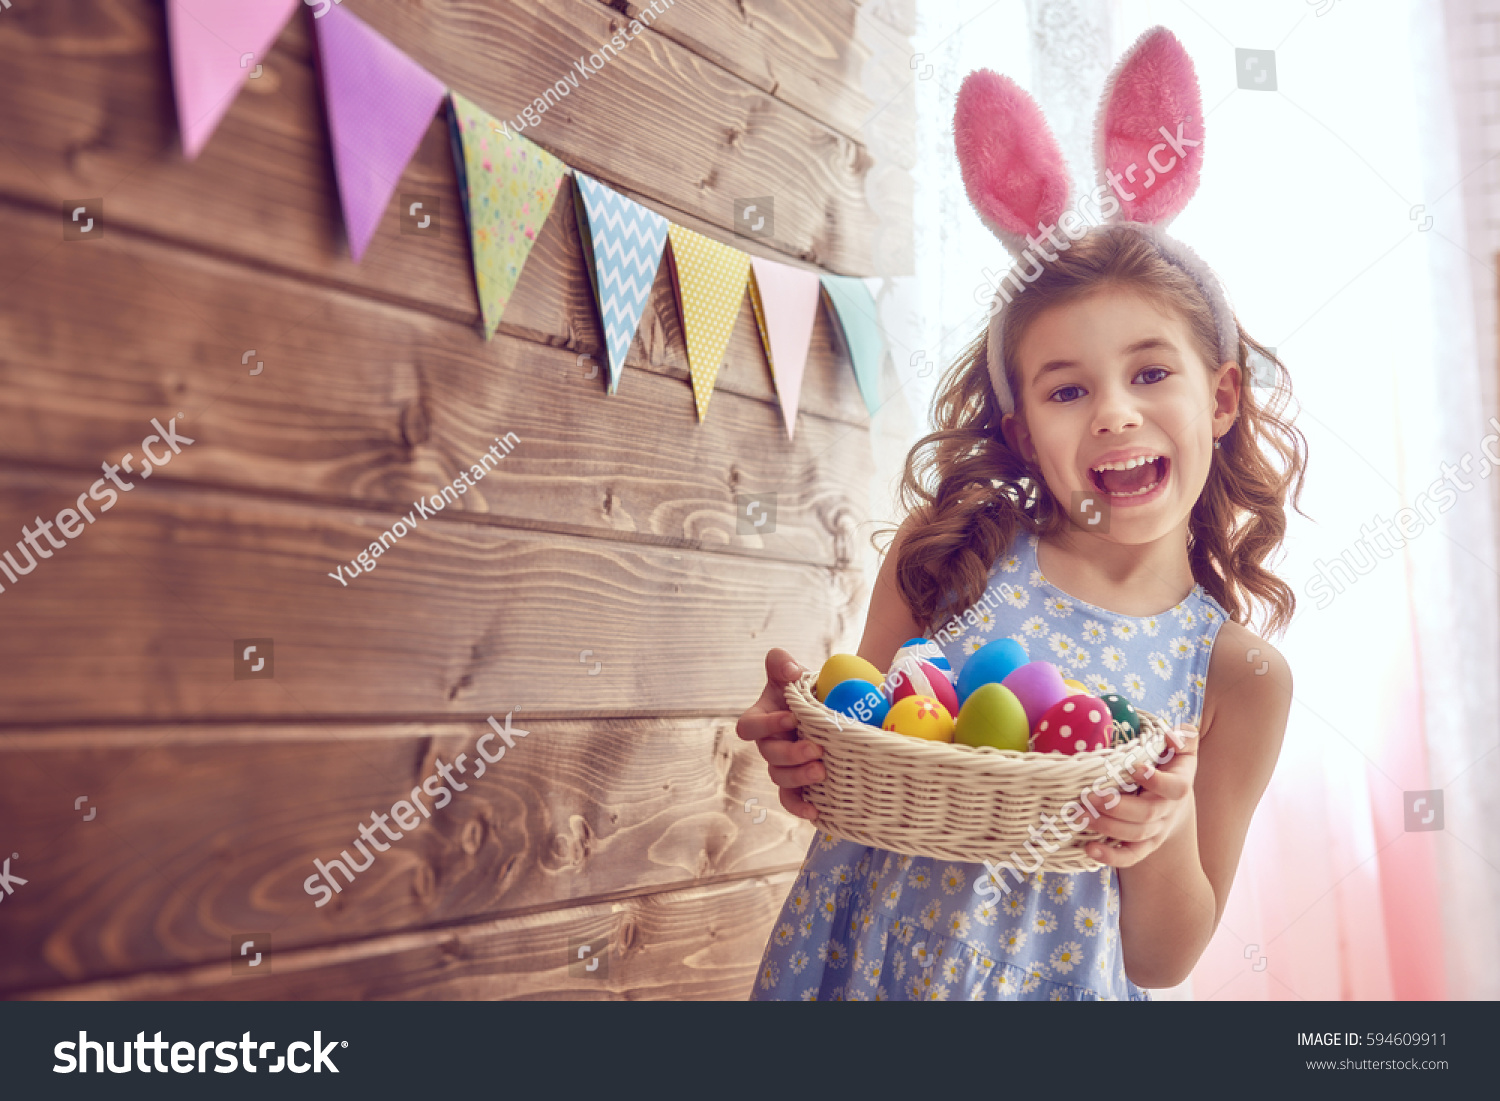 Cute little child wearing bunny ears on Easter day. Girl holding basket with painted eggs. #594609911